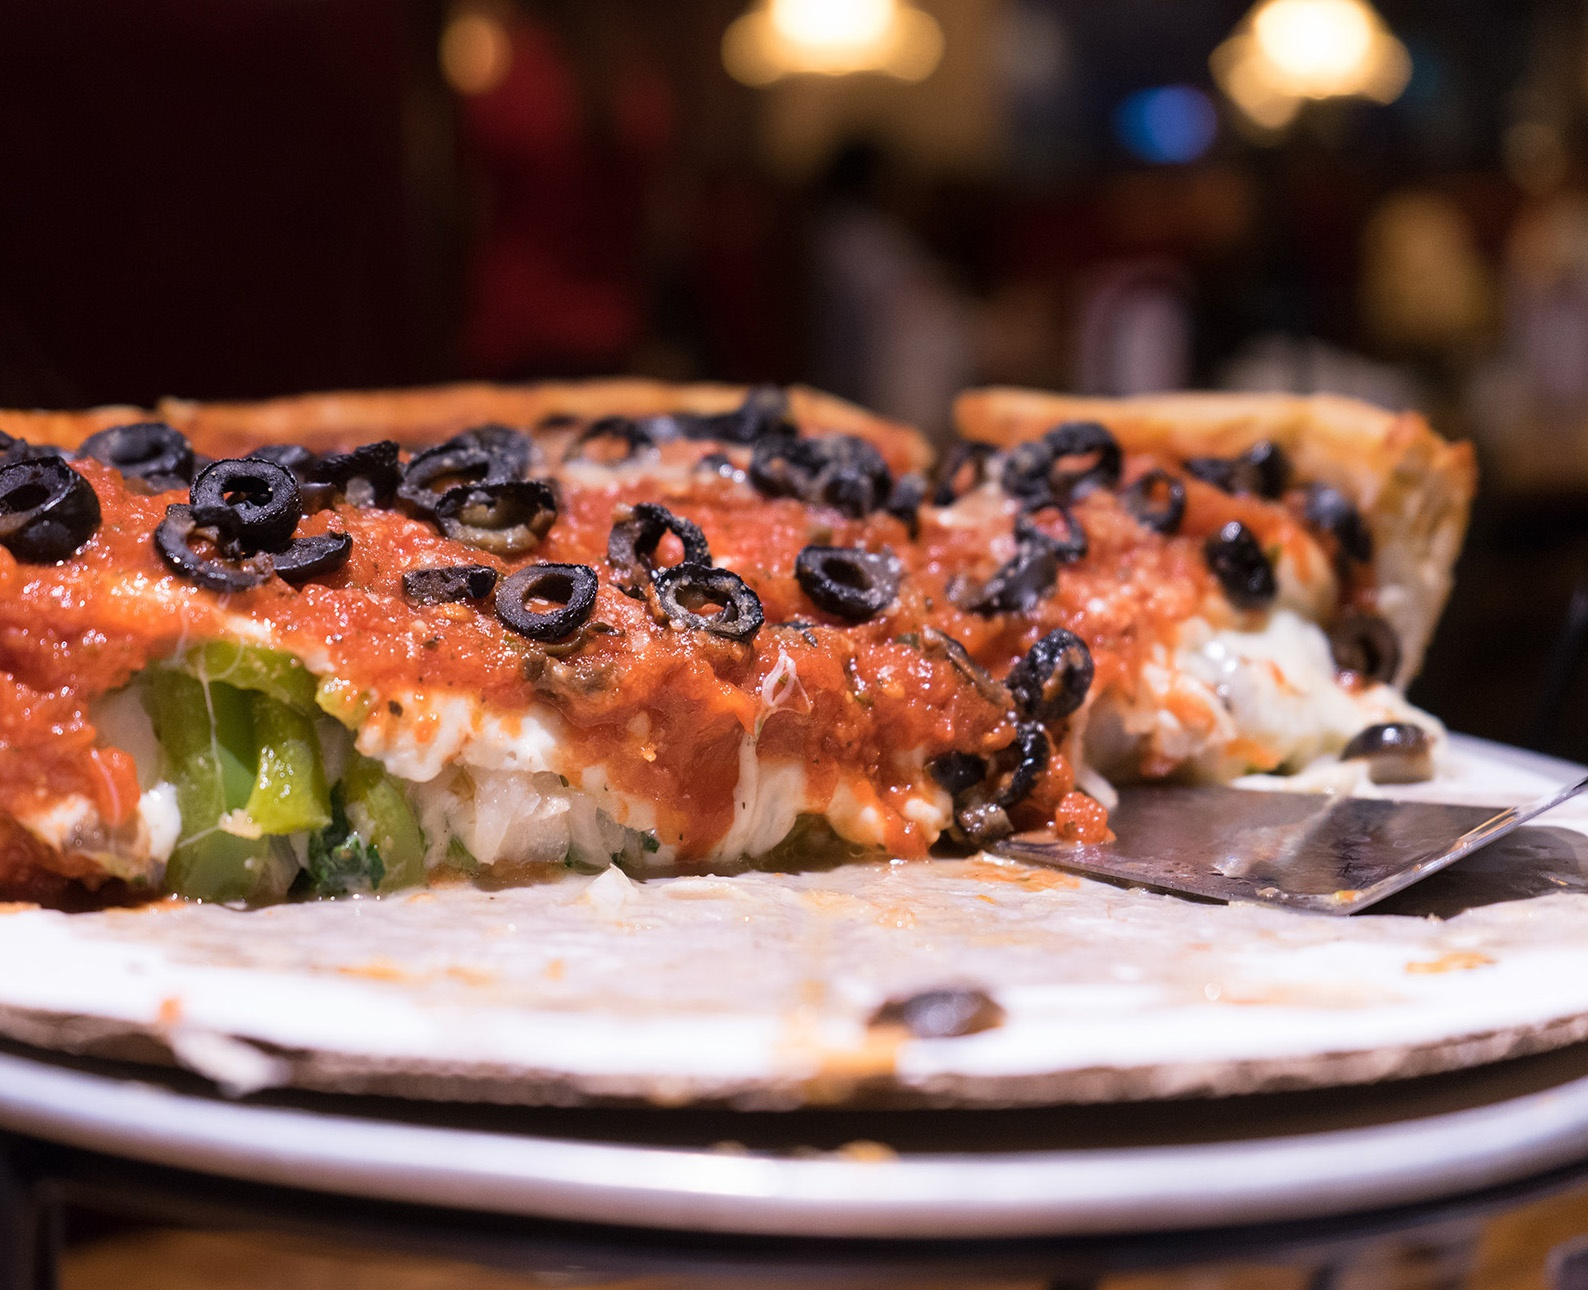 cheesy Chicago style deep dish pizza with olive toppings